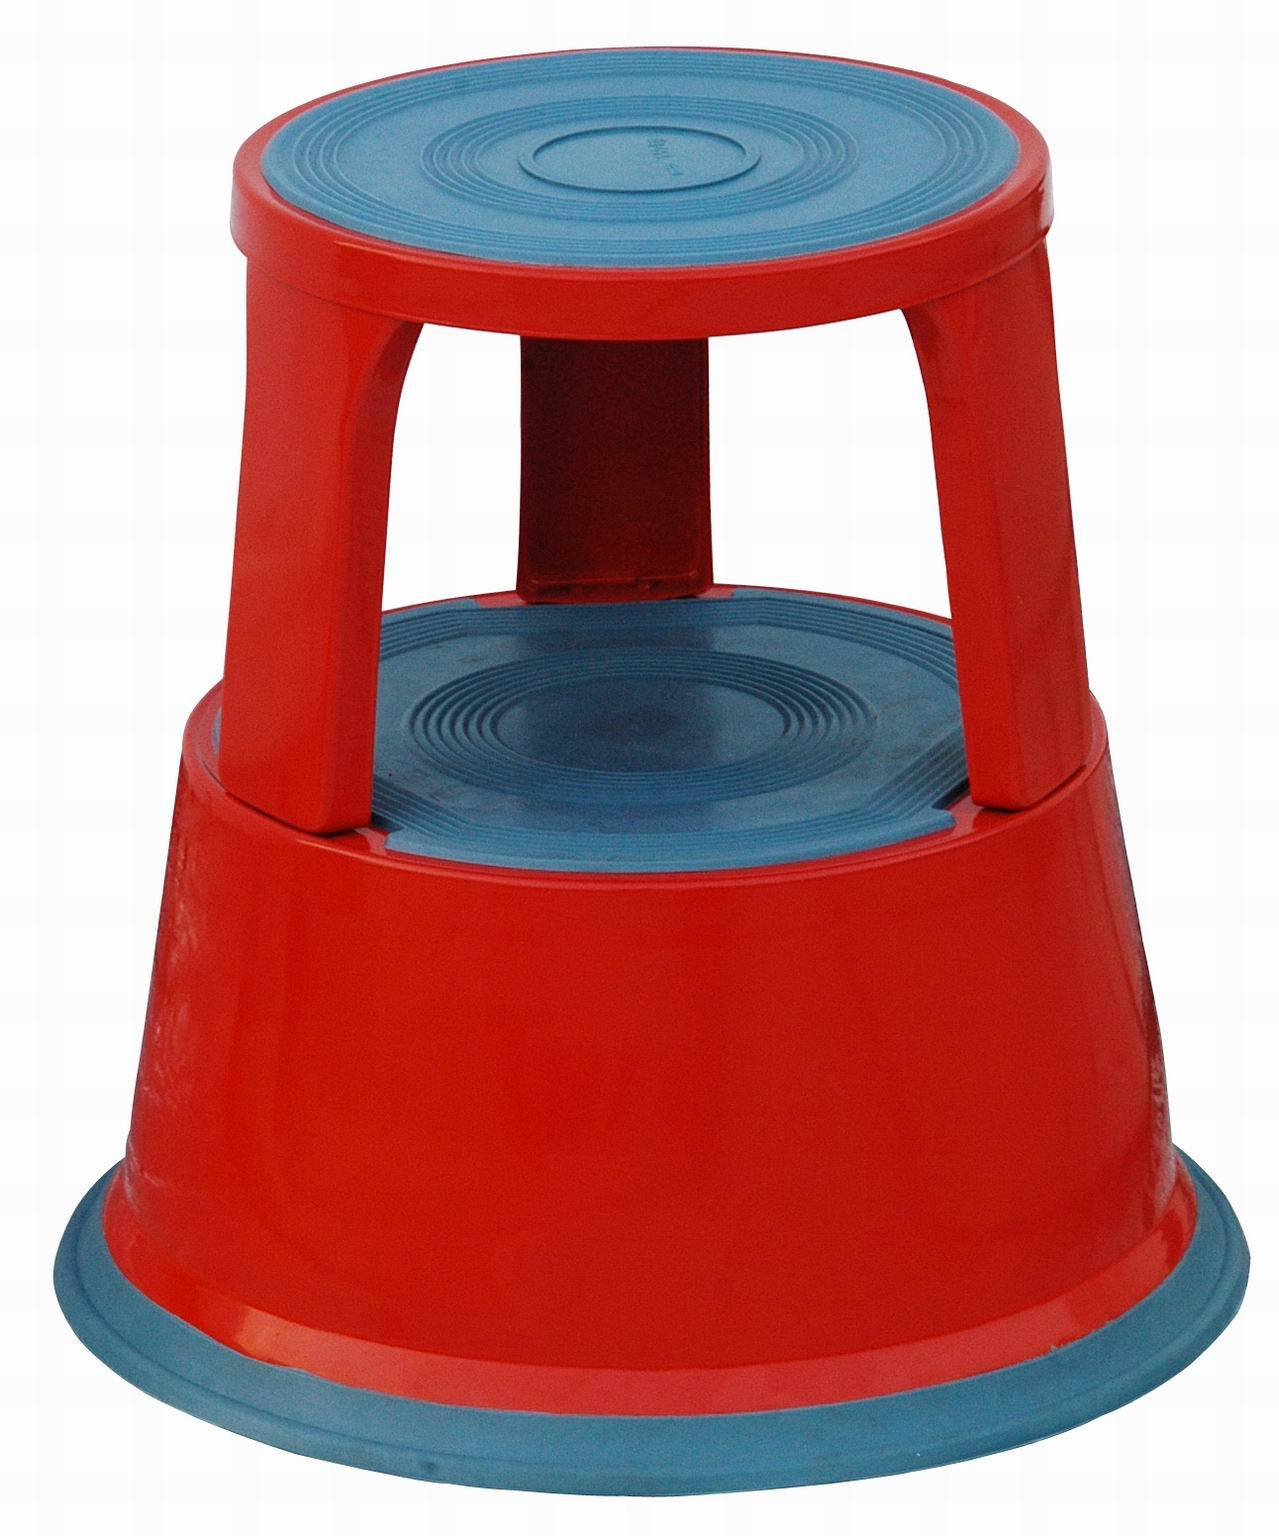 stool step pounds up solid to steel itm holds tone rolling construction silver